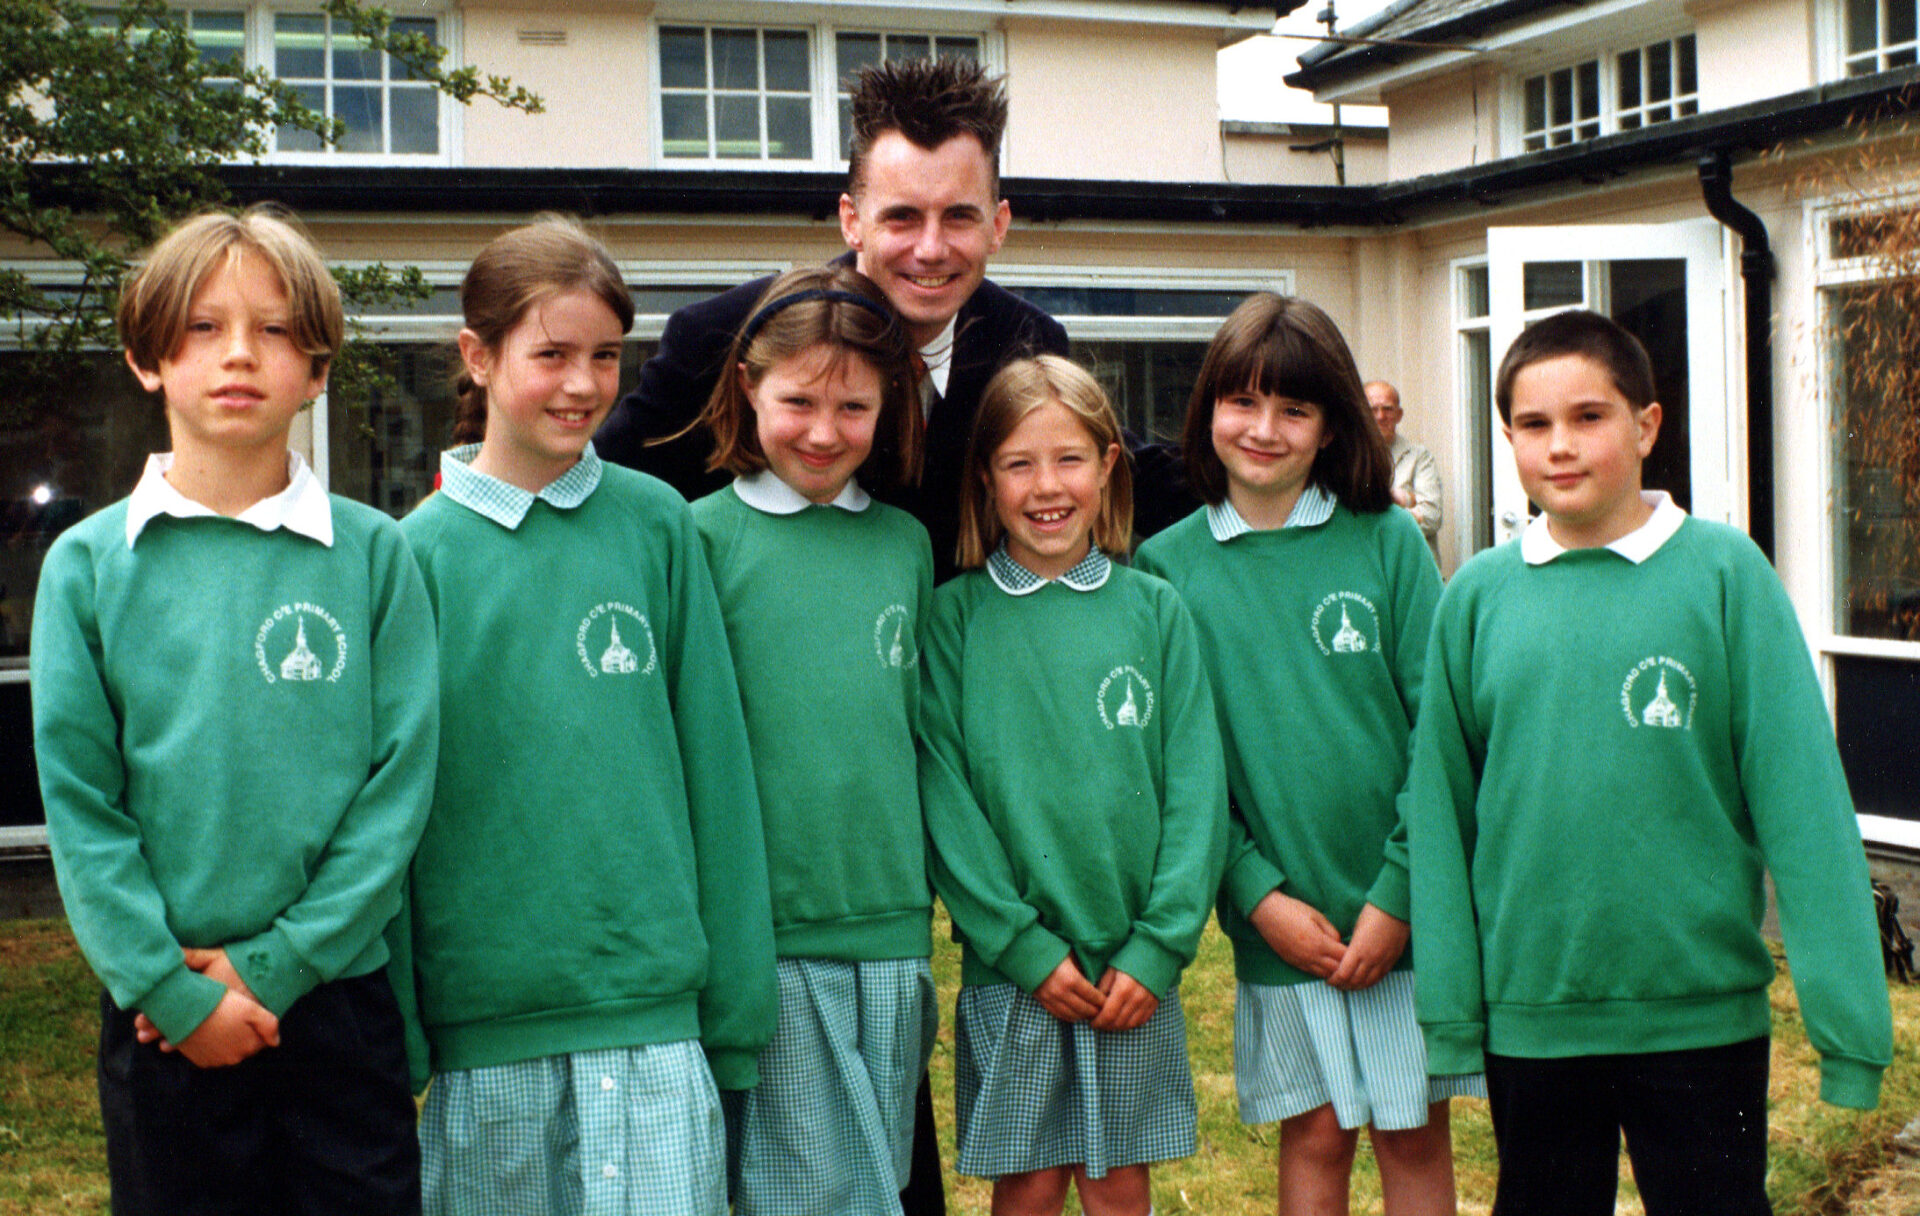 Chef Gary Rhodes visiting the school for a Tate & Lyle promotion.